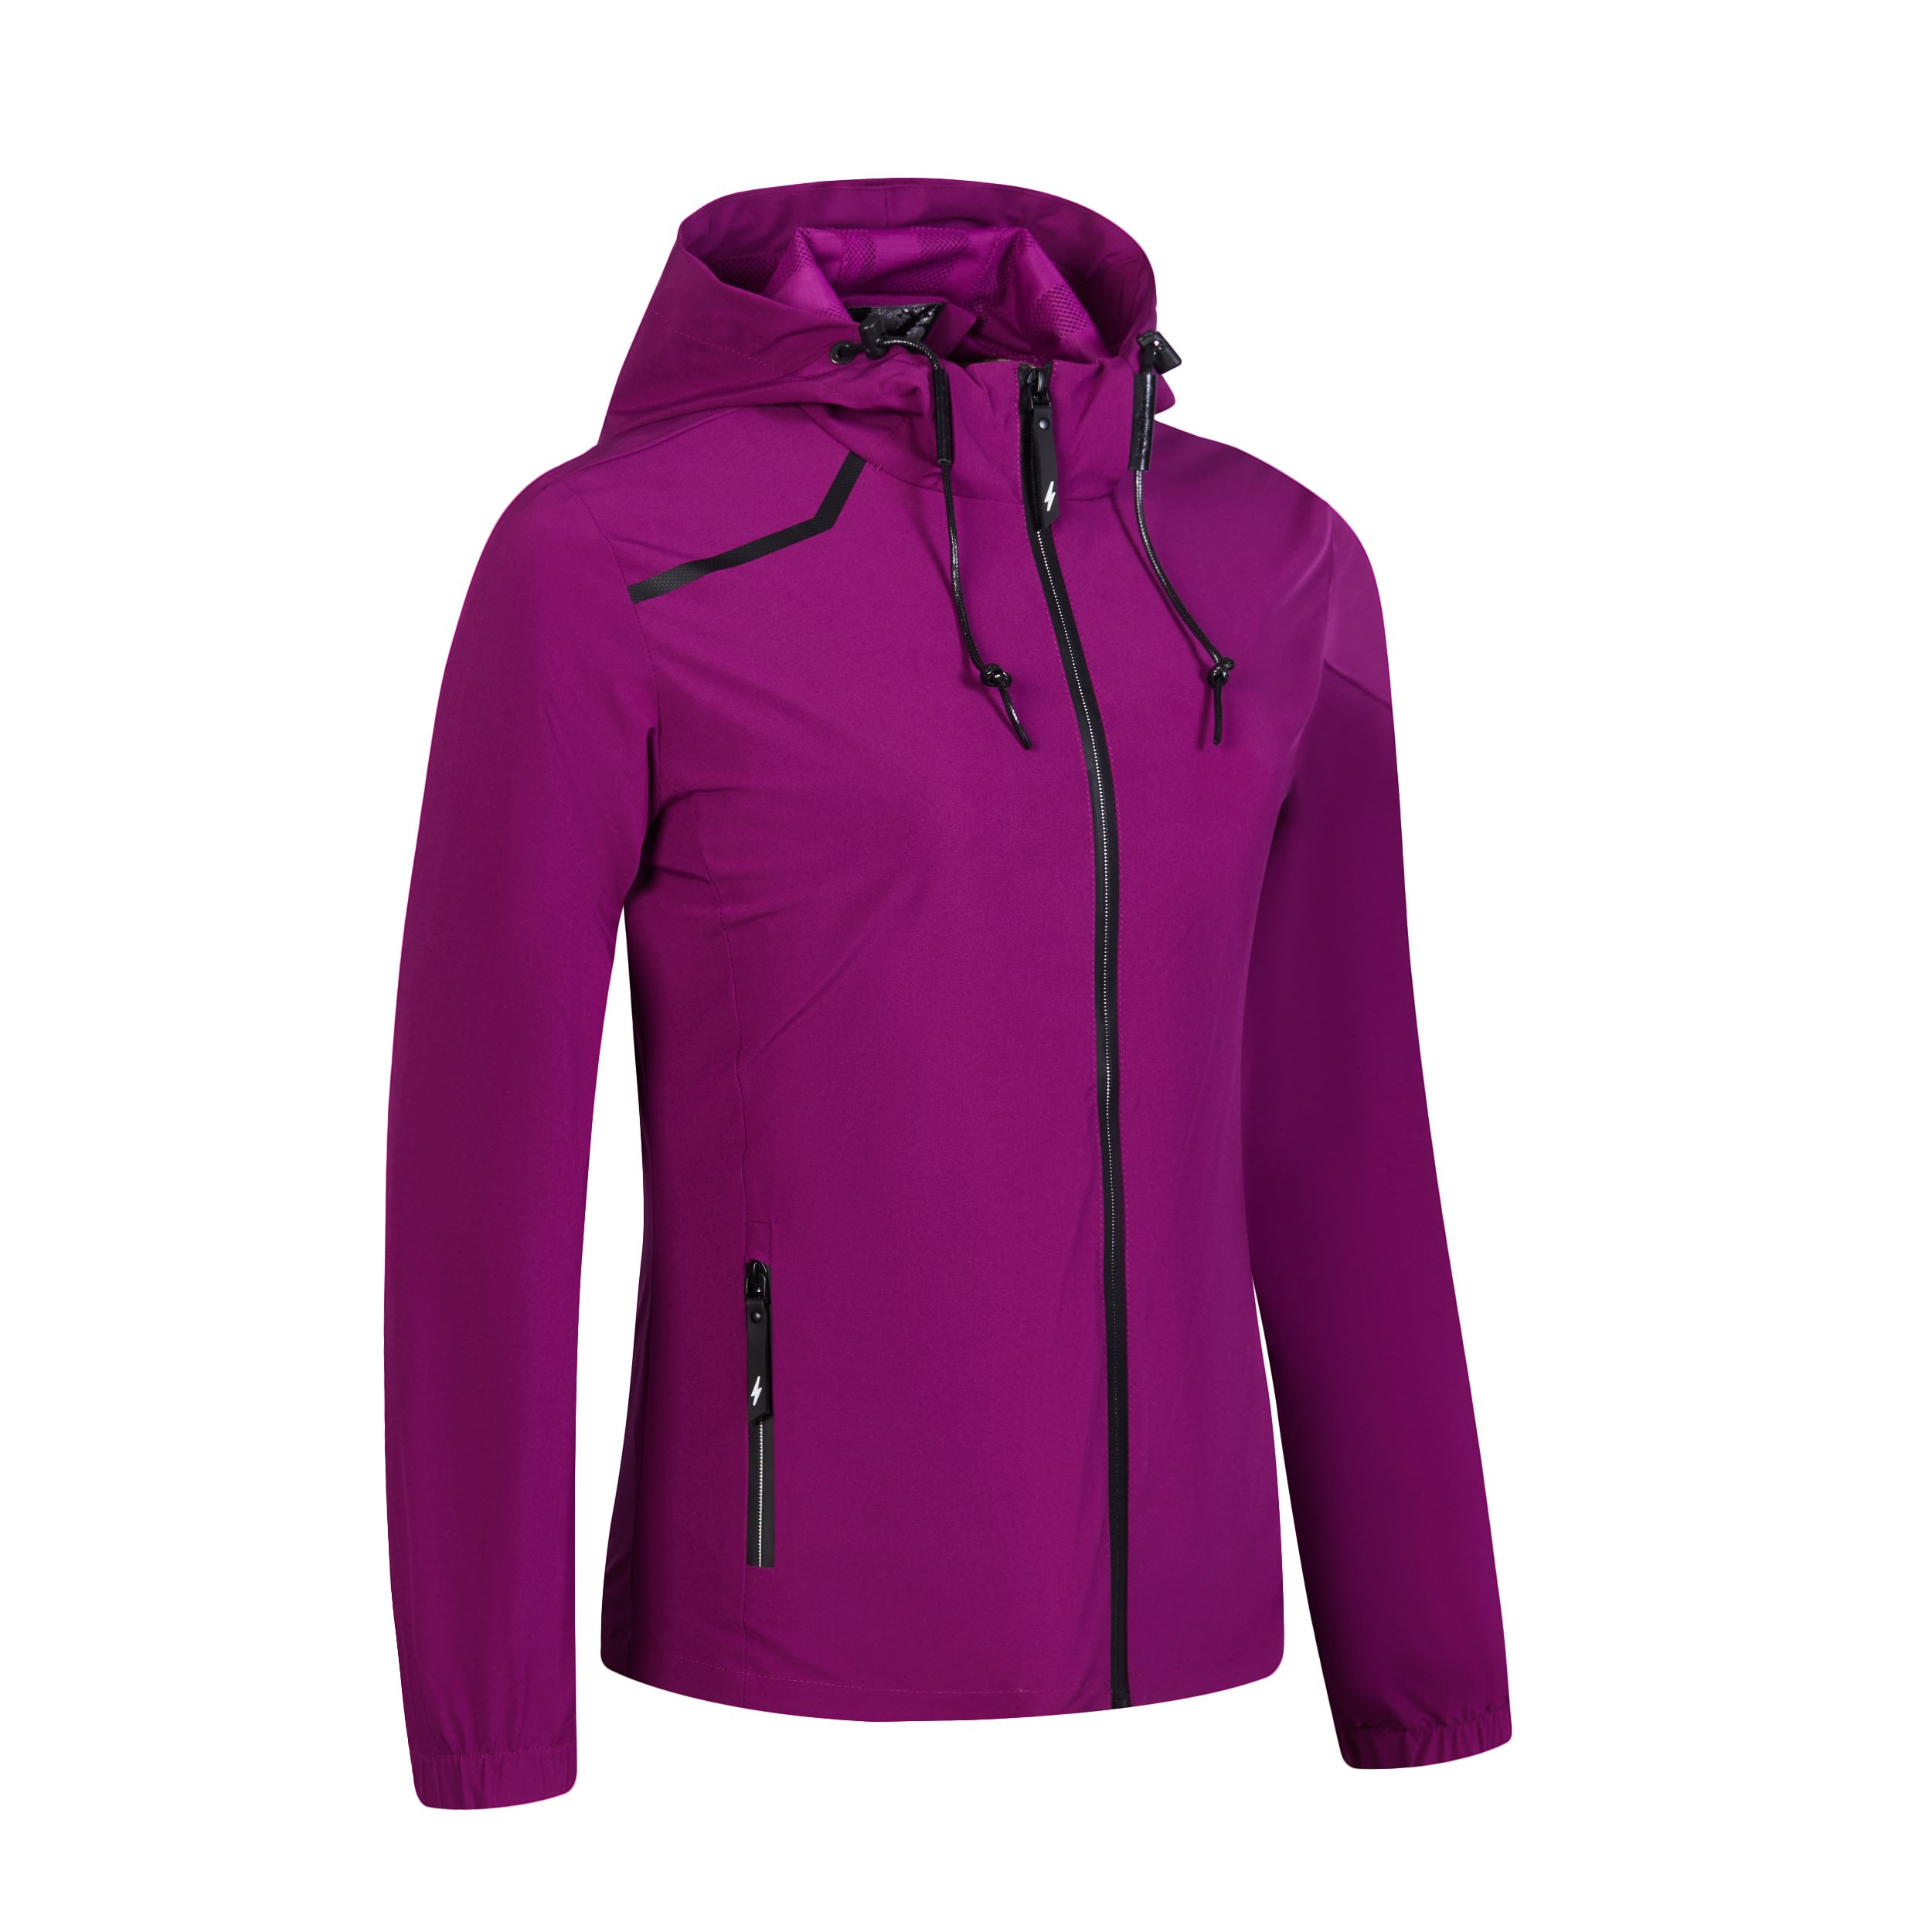 UDAREIT Womens Windbreaker Jackets No Fleece Winter Rain Jacket Coat Water Resist Casual Full Zip Spring Running Hiking Clothes Plus Size Purple M